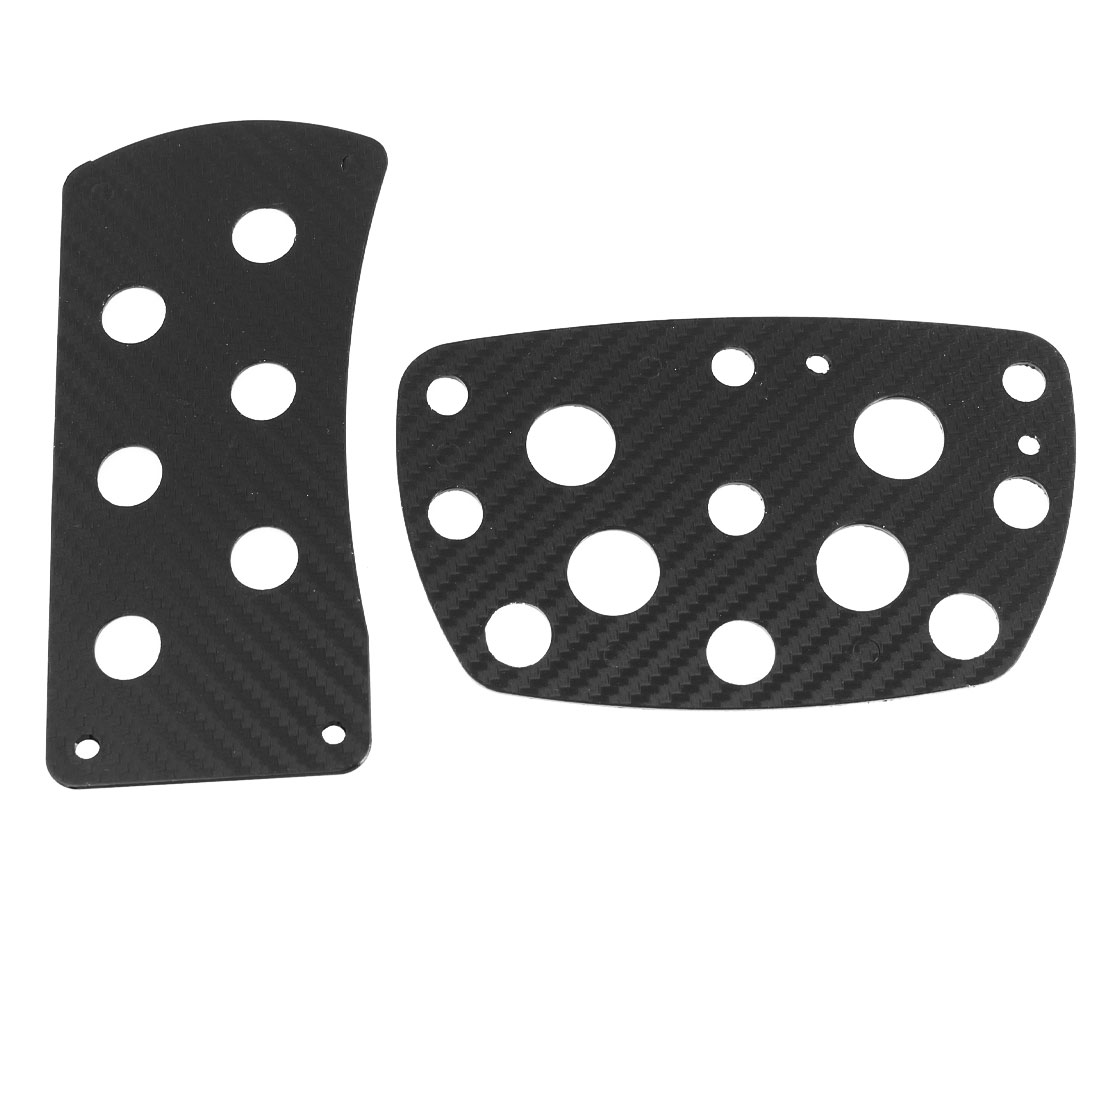 2 in 1 Black Carbon Fiber Printed Metal Automotive Pedal Pad Cover